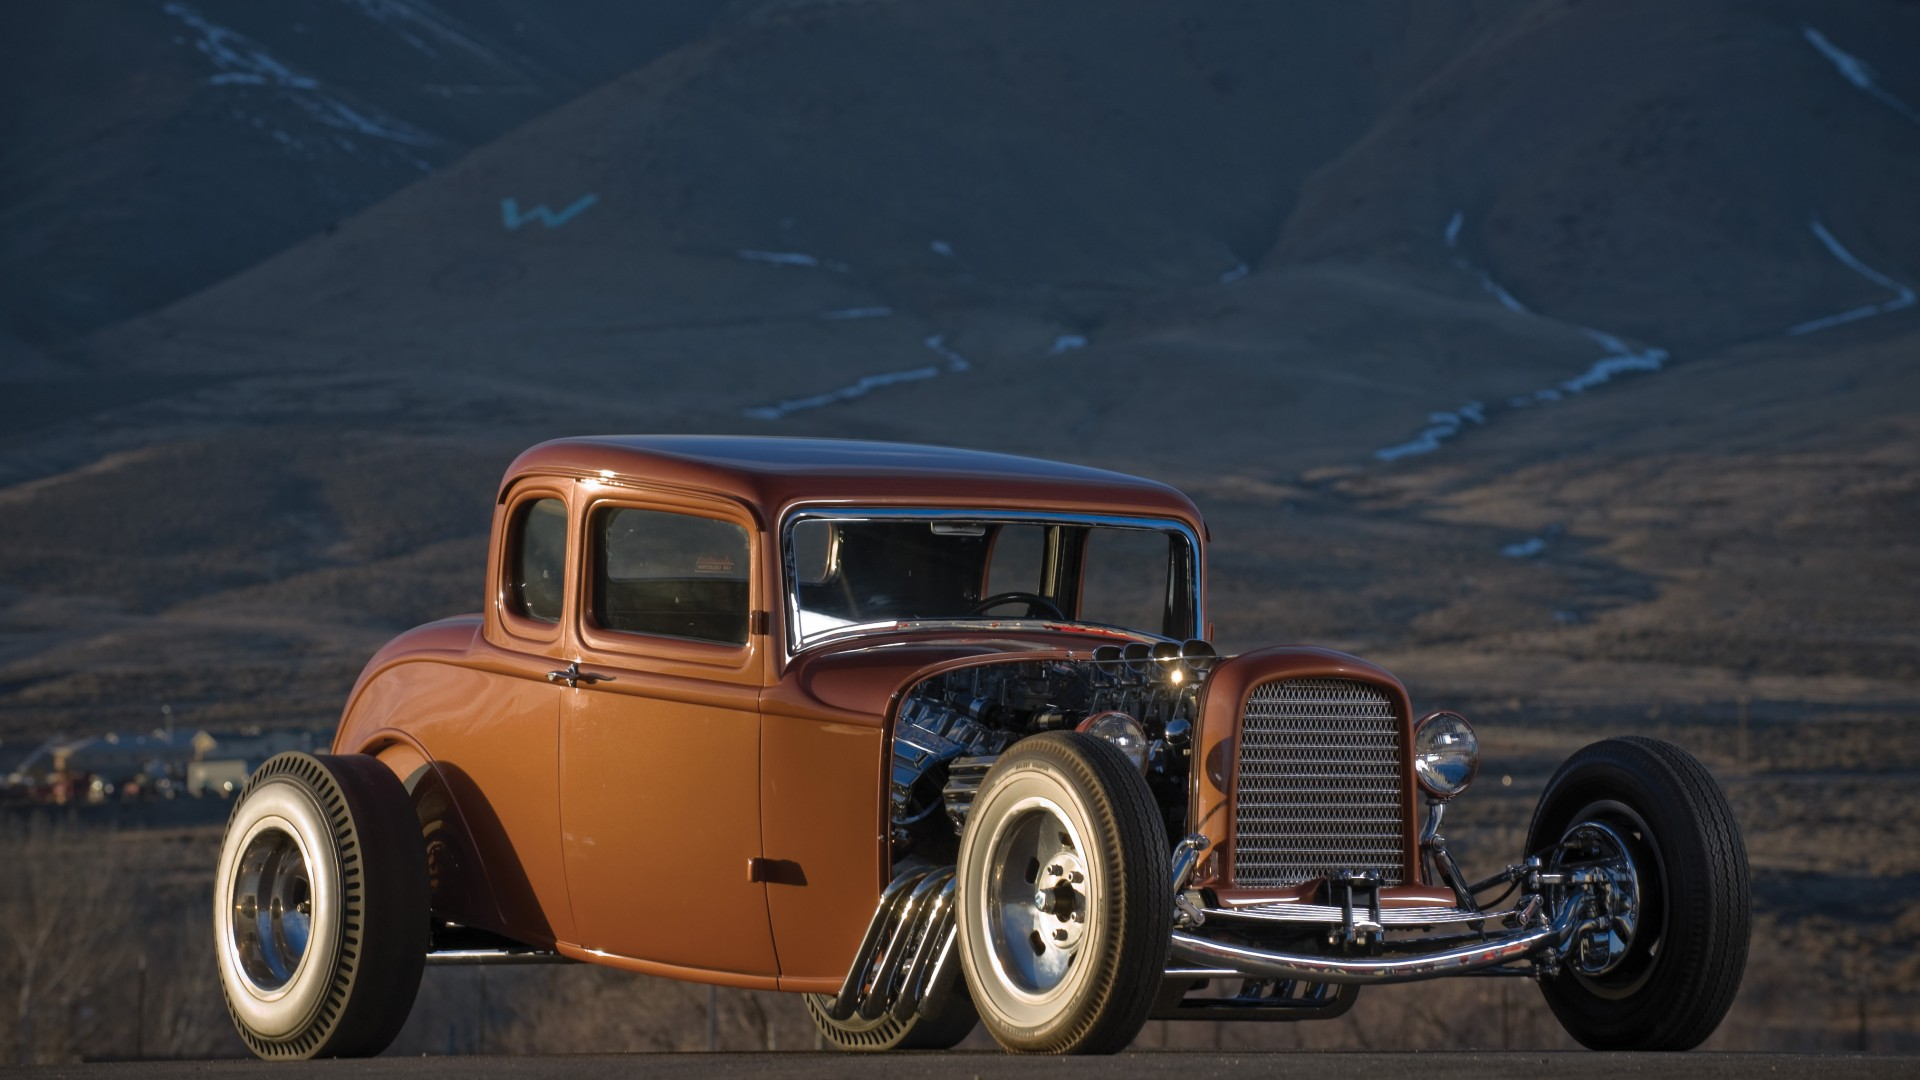 Hot rod, rodder, channeling, dual quad, elephant, Chrysler hemi, Mercury, review, test, buy, rent (horizontal)